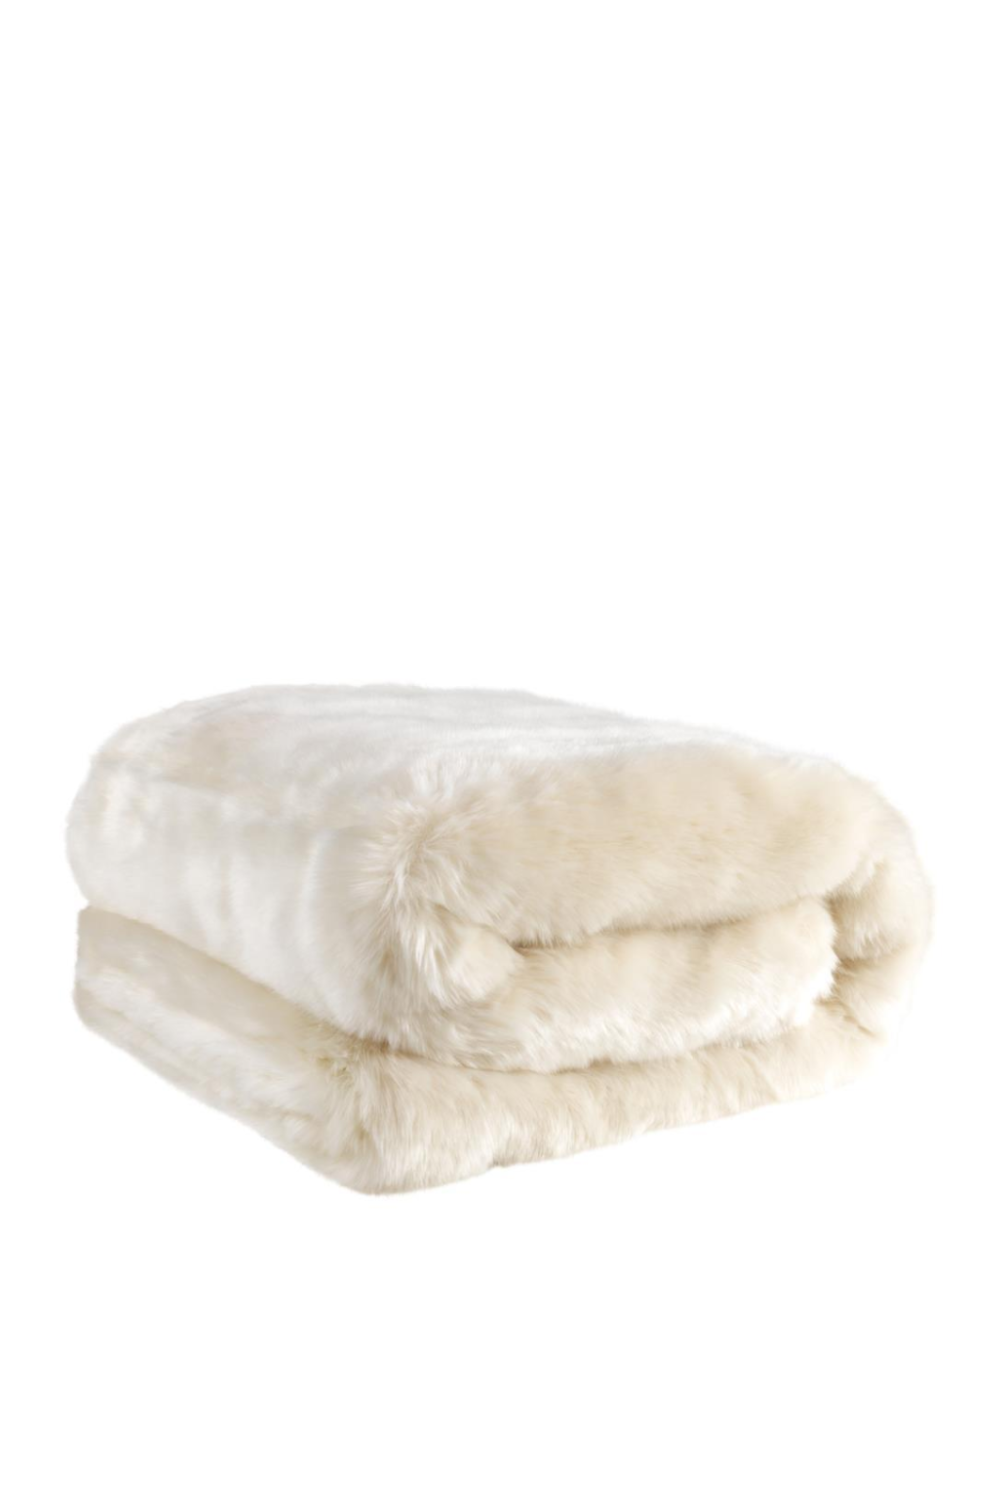 White Fur Throw | Eichholtz Alaska | #1 Eichholtz Retailer